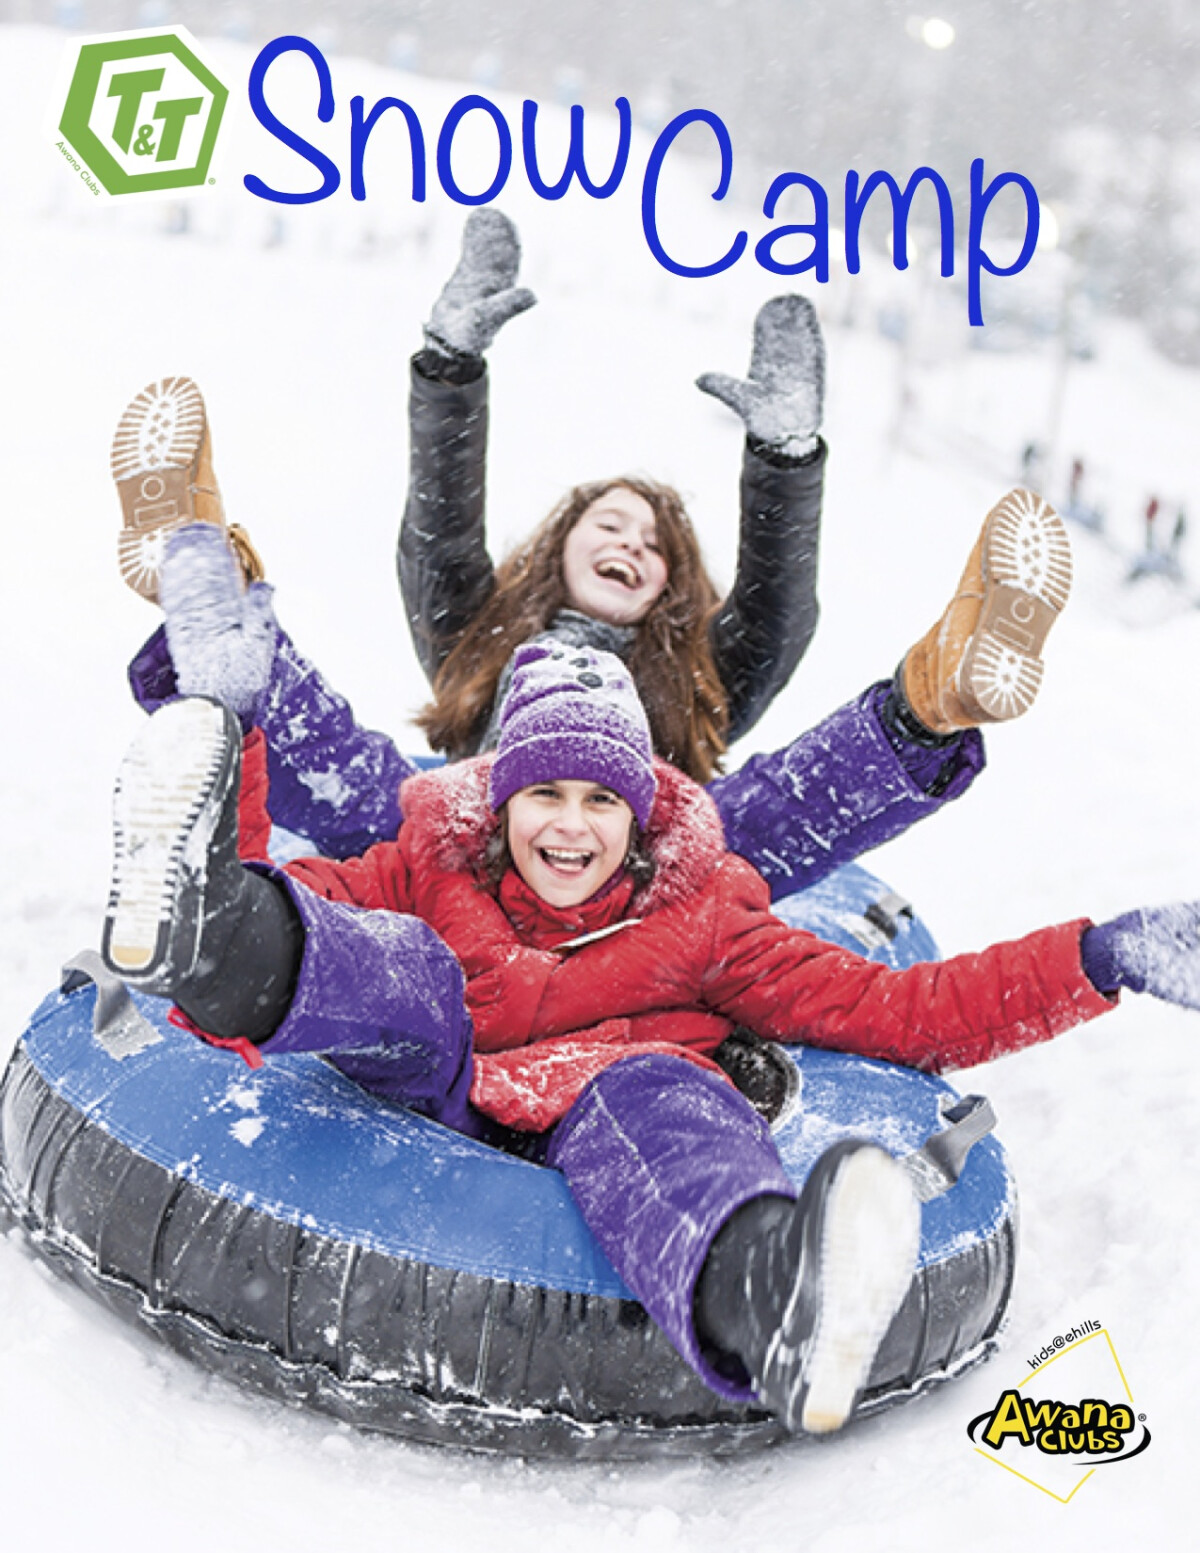 Awana Snow Camp